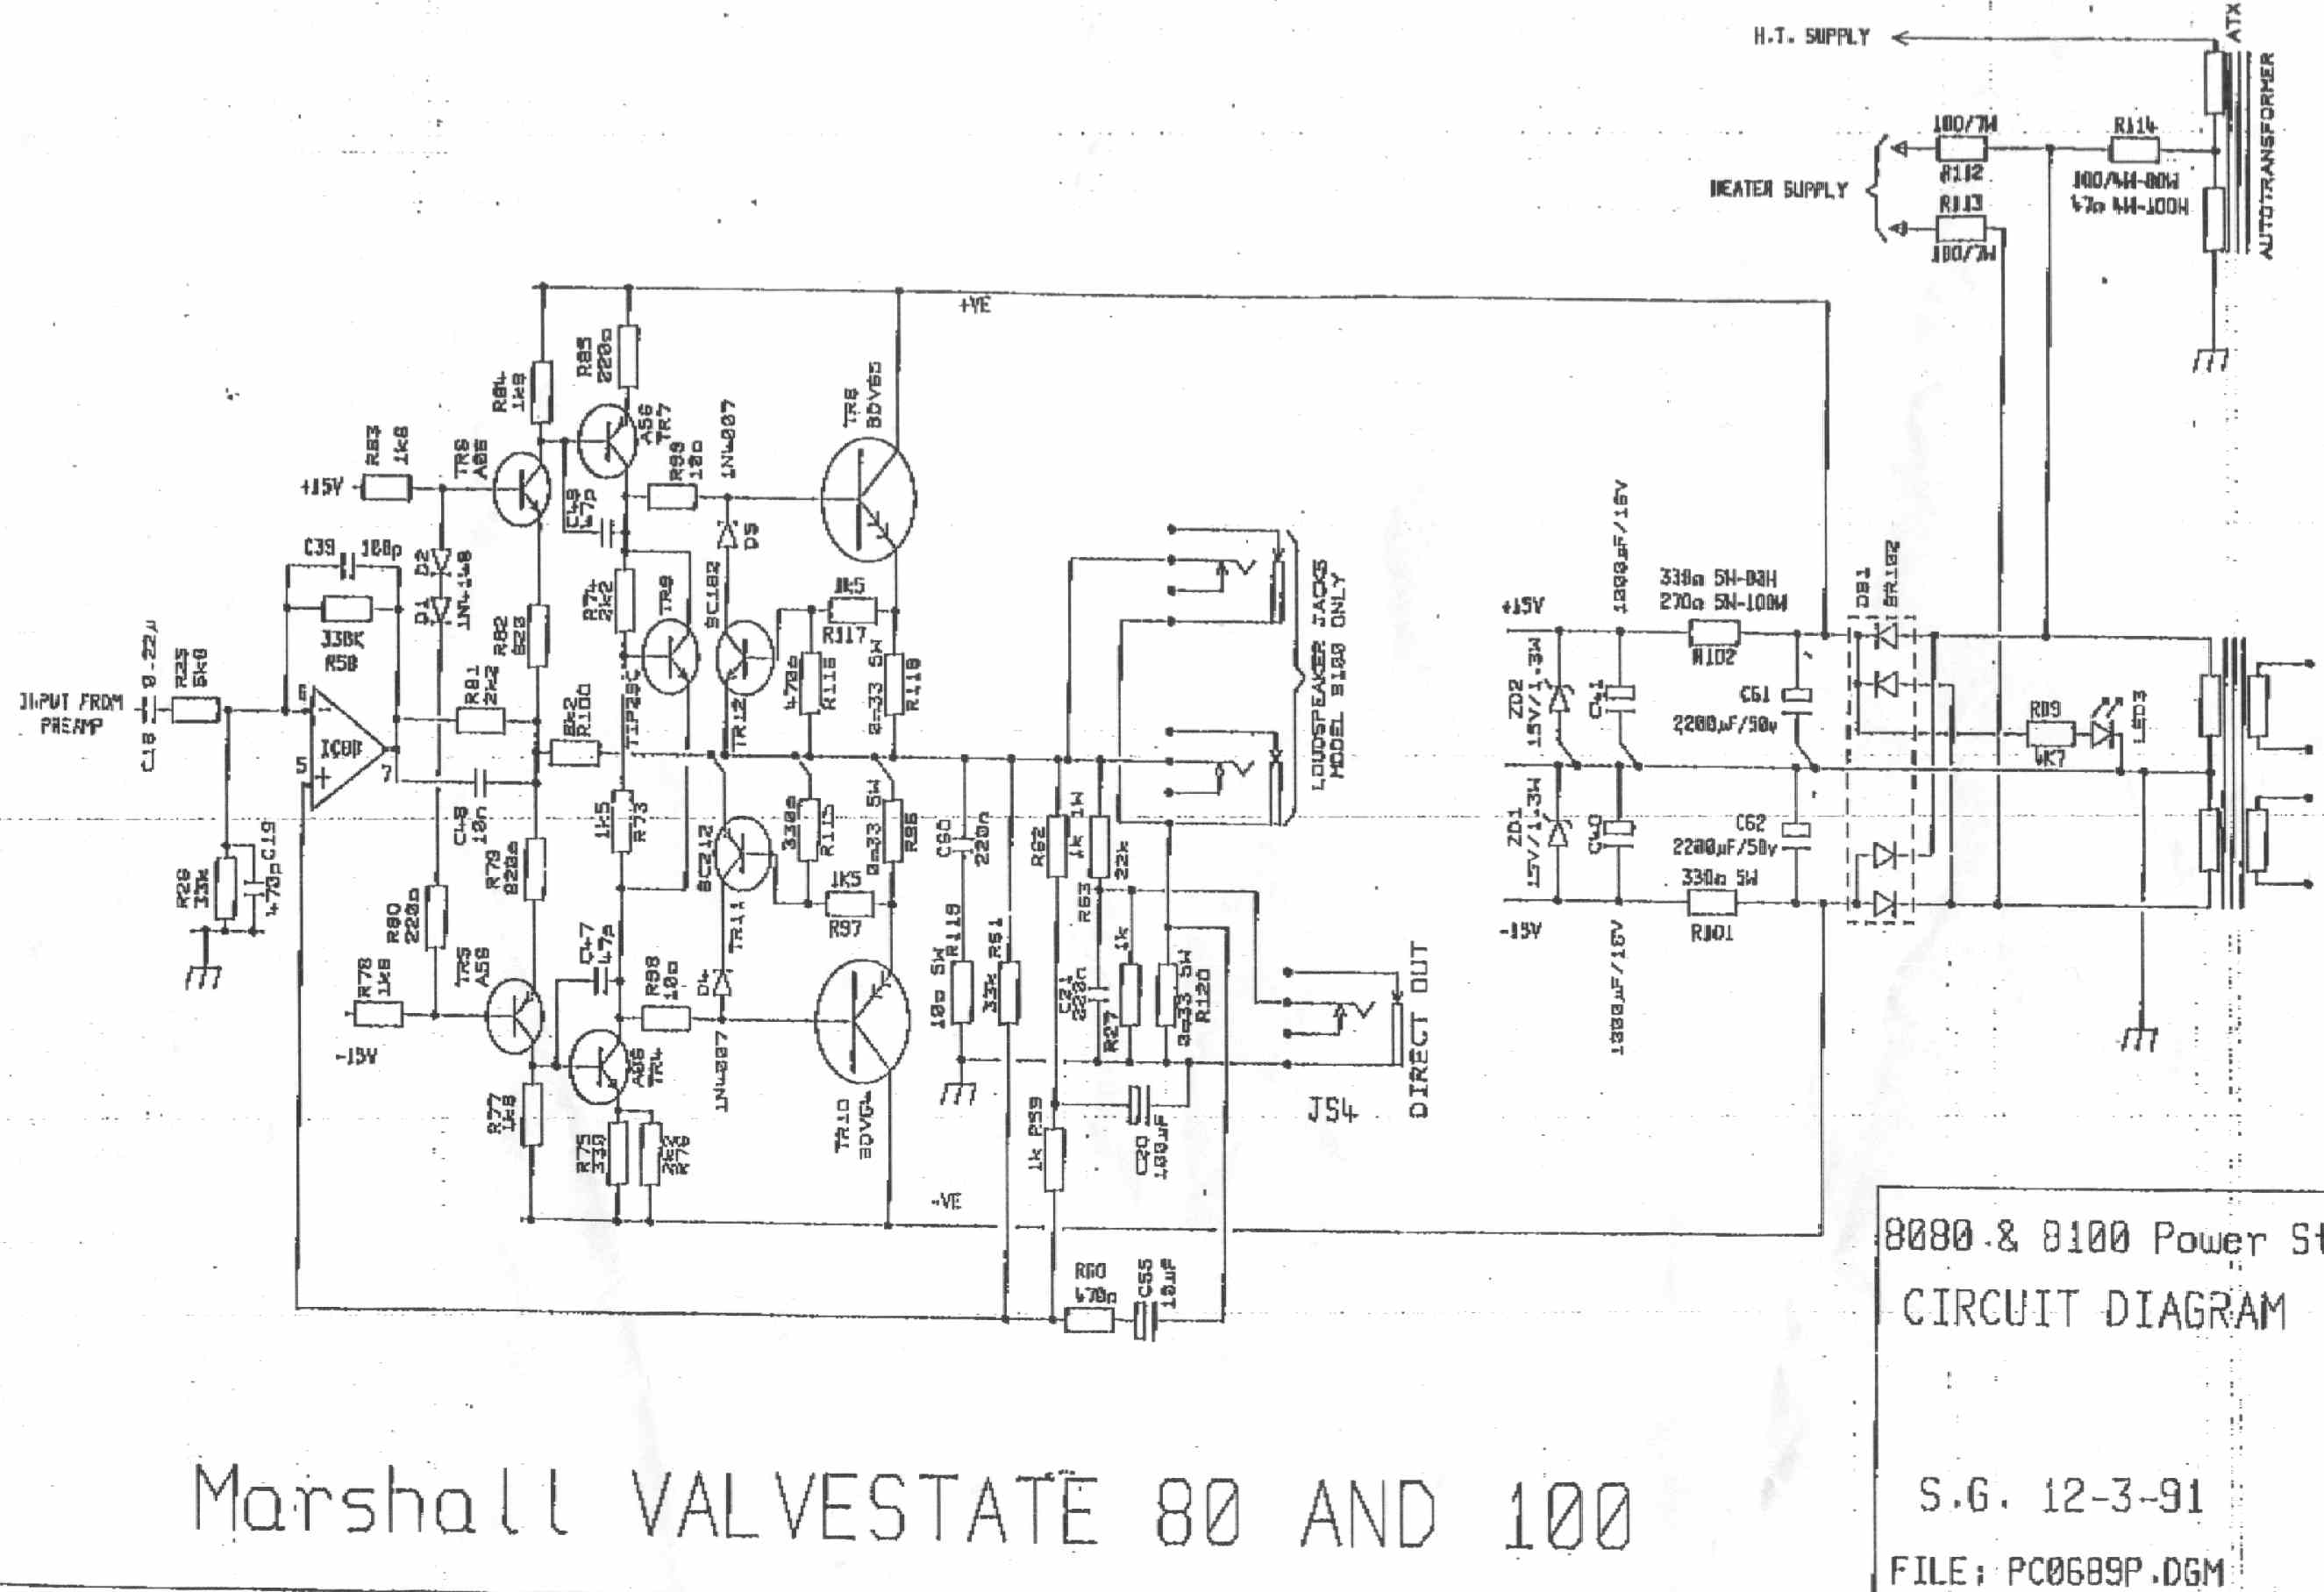 Marshall Valvestate 8080 Circuit Diagram